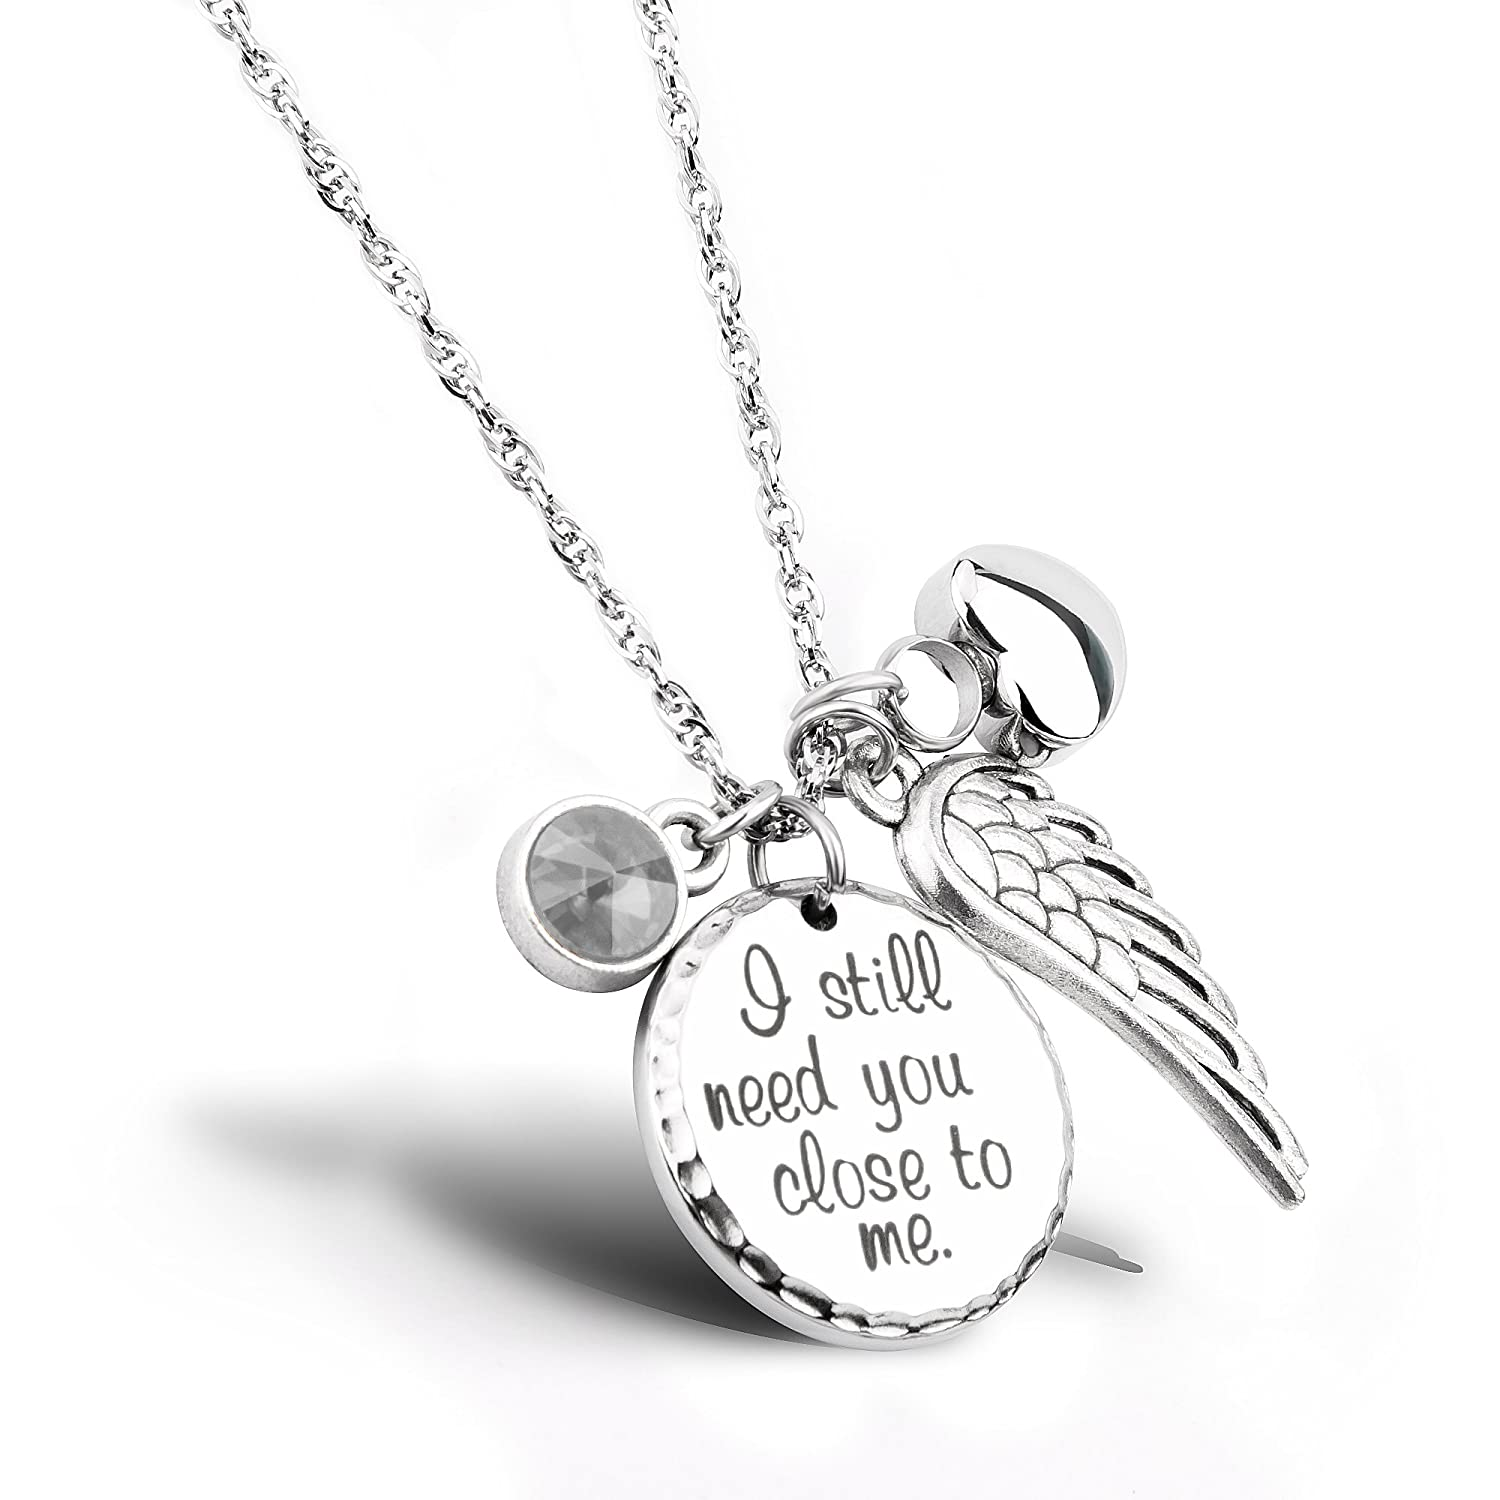 I Still Need You Close to Me Cremation Jewelry Urn Necklace Pet Memorial  Ash Holder Necklace with Birthstone Crystal and Angel Wing Charm Sympathy  Gift ... 69b7c8b0f20e